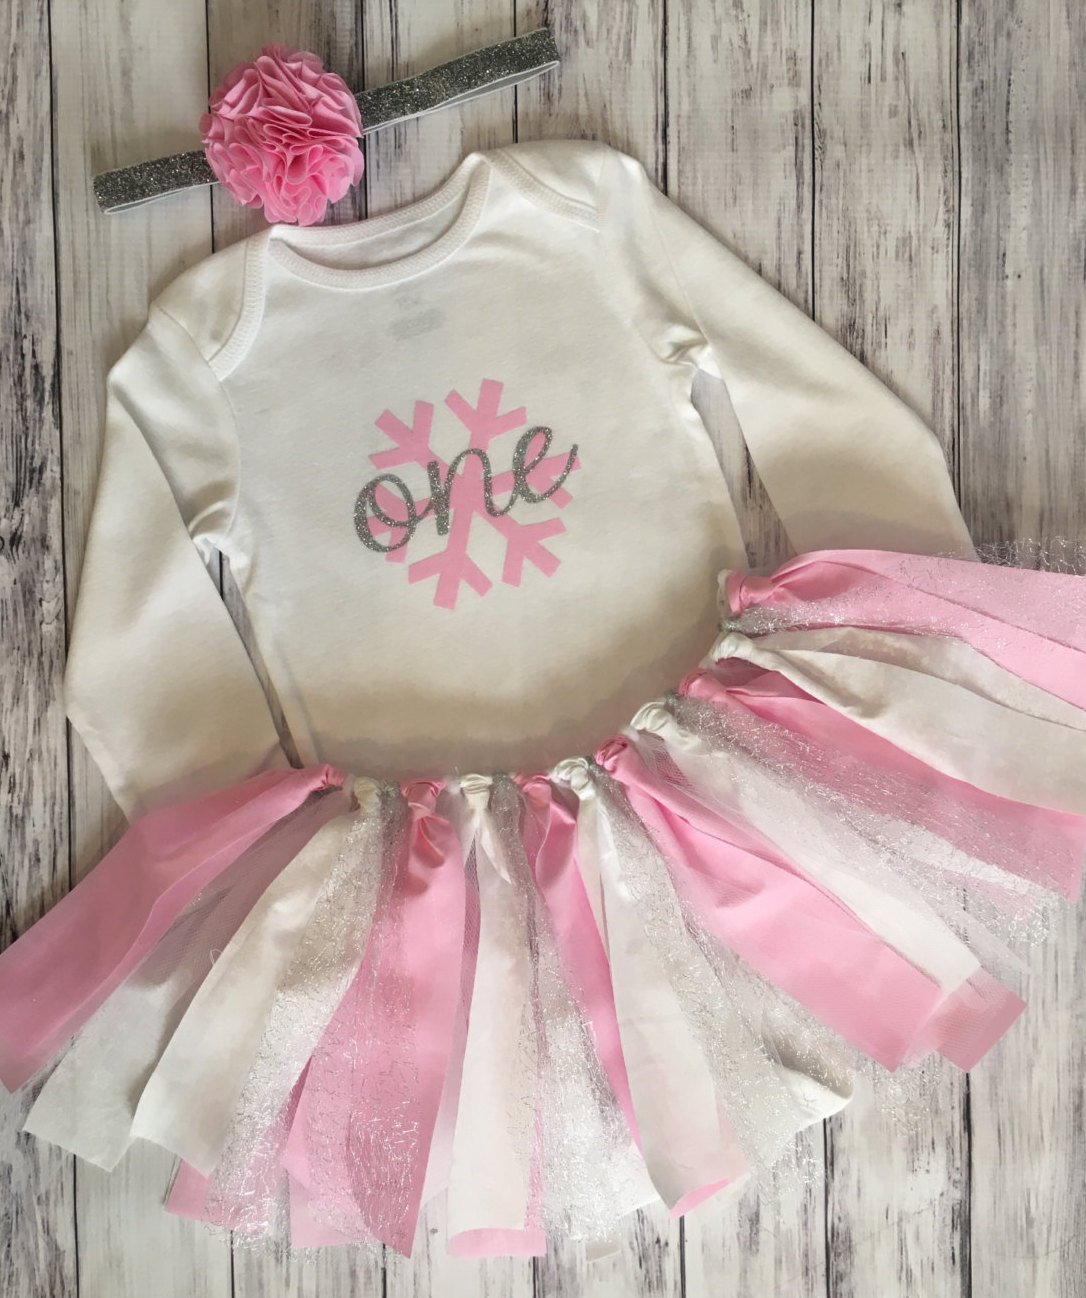 pink_winter-one-derland-birthday-party-tutu-outfit